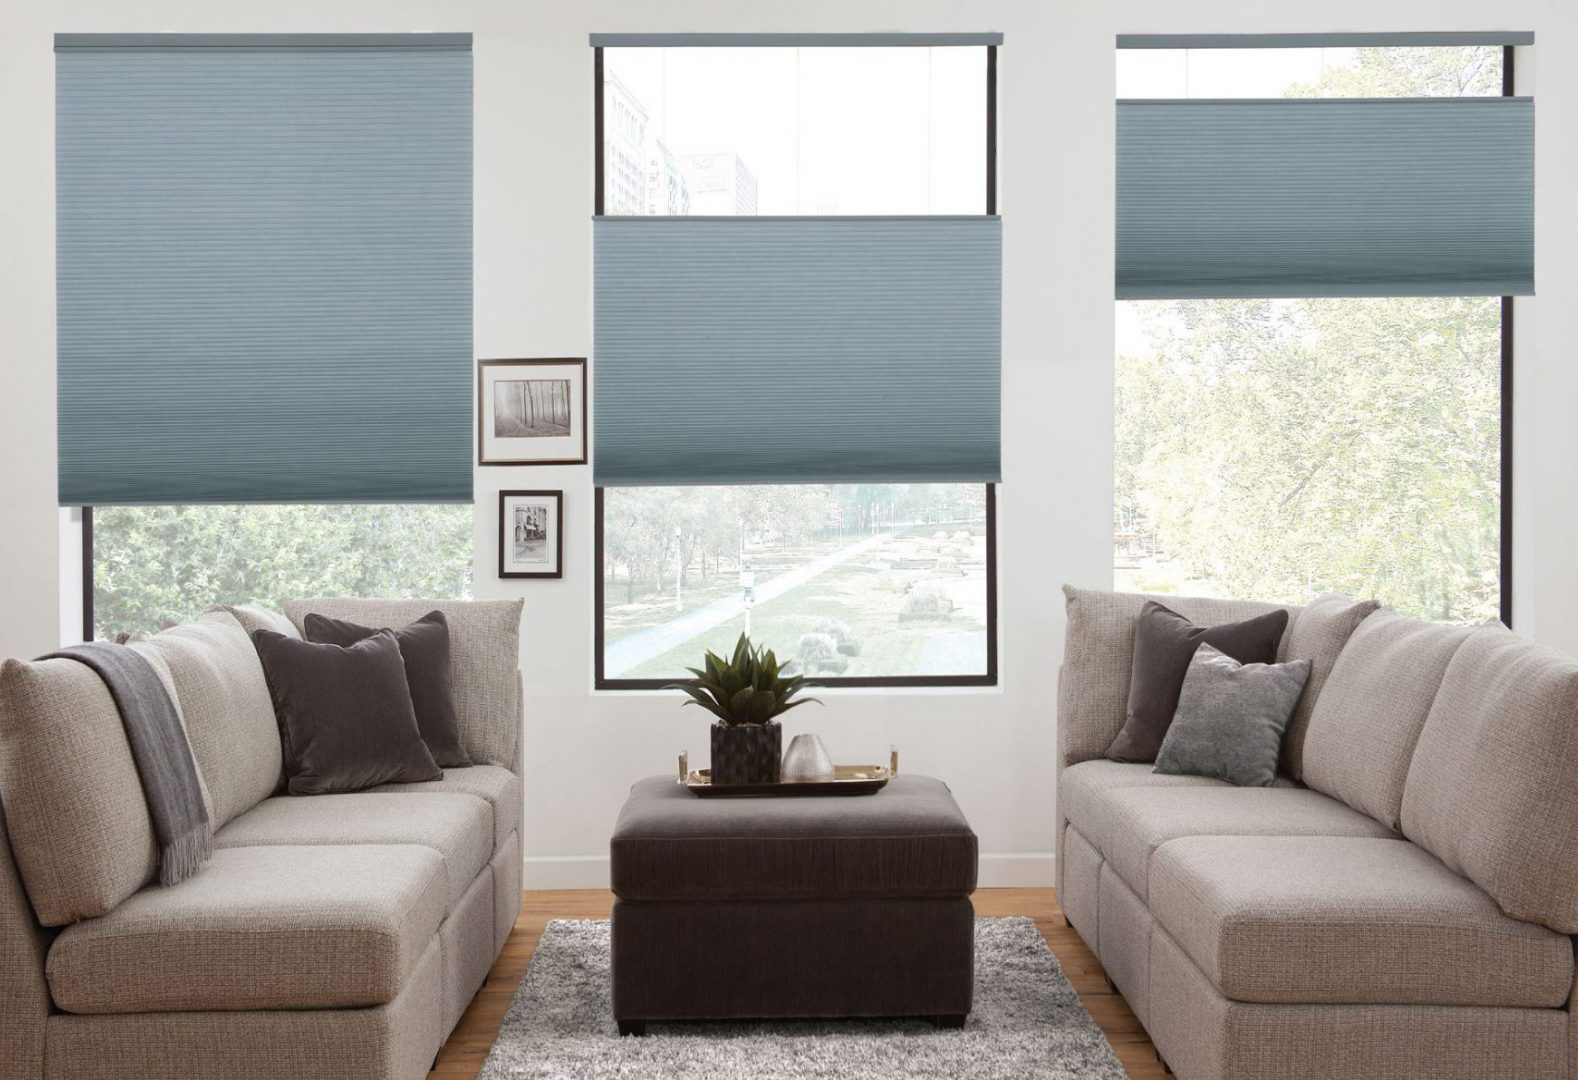 Top-Down/Bottom-Up cellular shades, the perfect fit for the living room